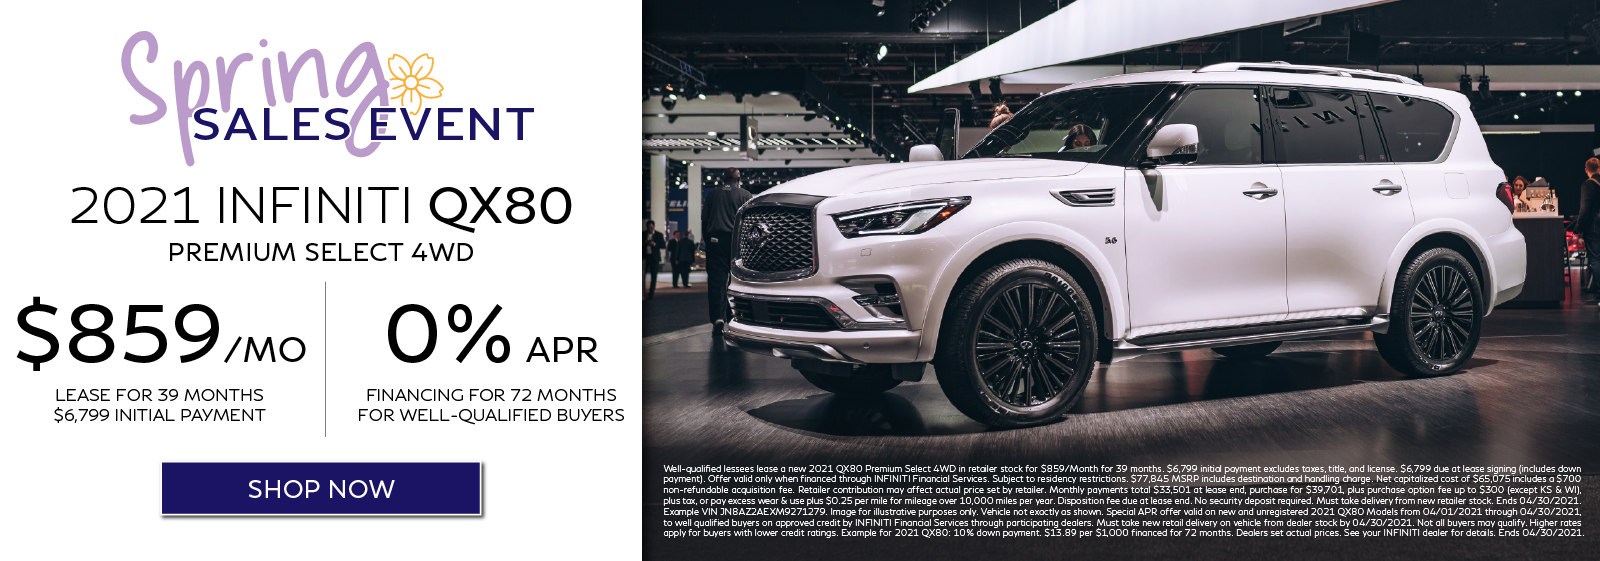 2021 QX80 Lease and APR Offers. Click to shop now.